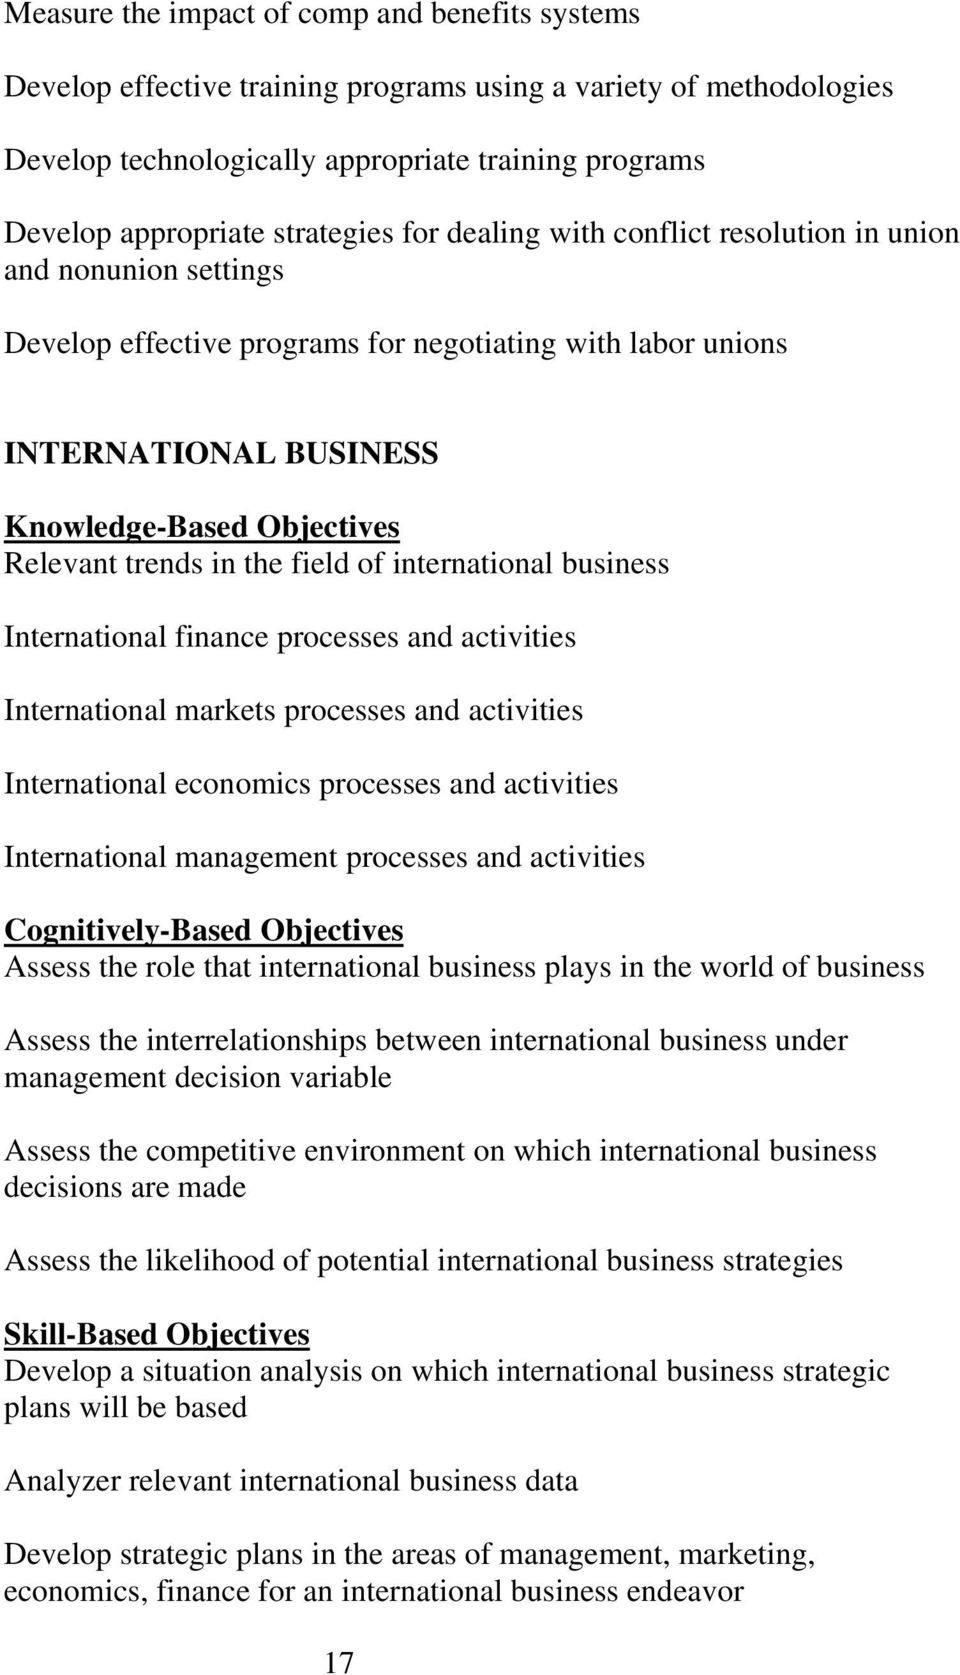 trends in the field of international business International finance processes and activities International markets processes and activities International economics processes and activities